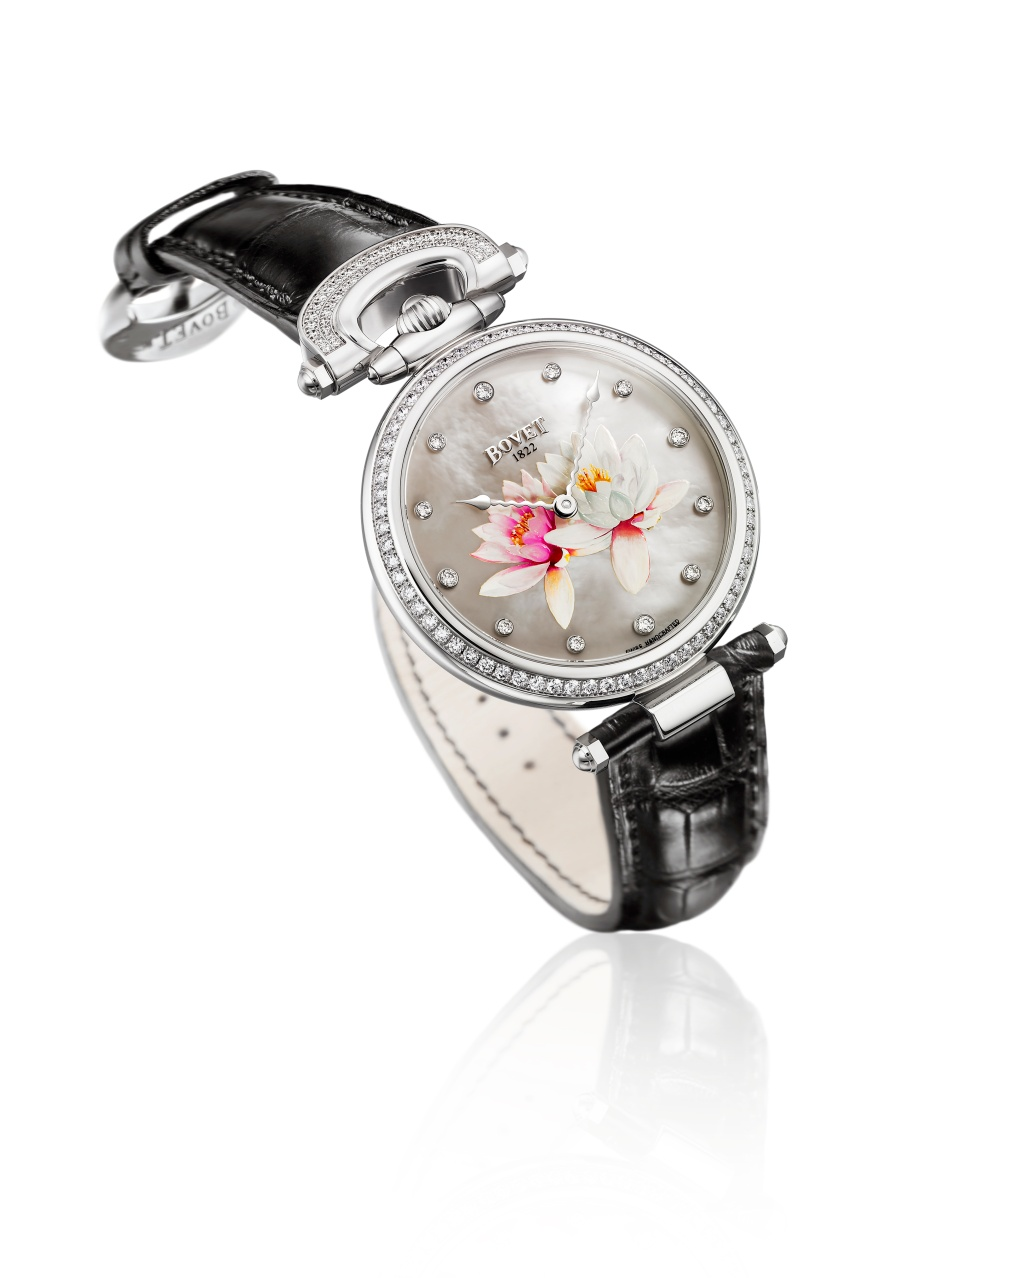 Bovet Watch   Chateau De Motiers   Ref. Nr. HMS027-SD12-L    Call 312-944-3100  | For Availability